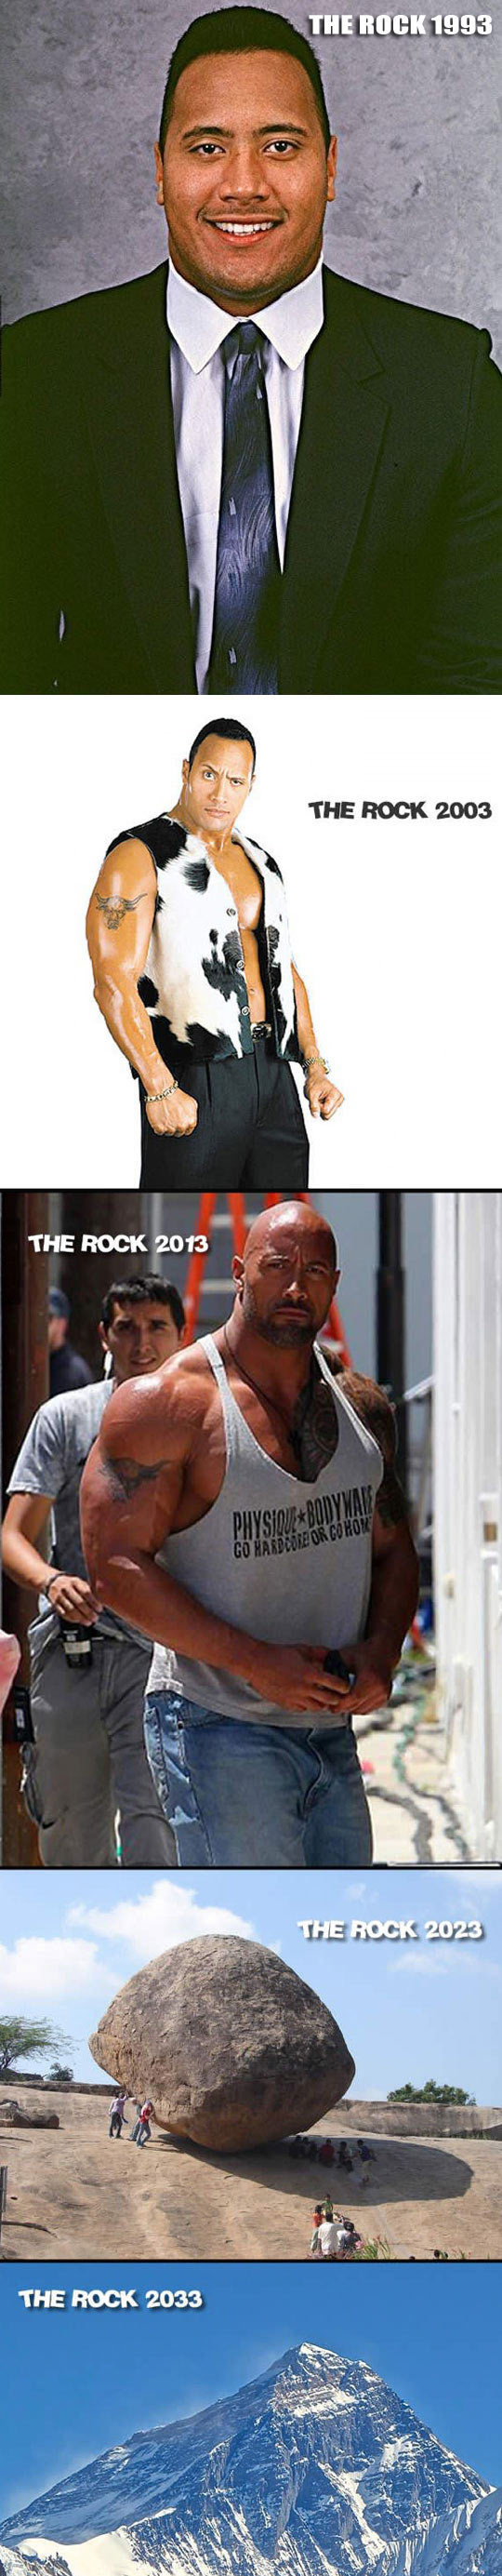 funny-Rock-actor-years-changes-mountain